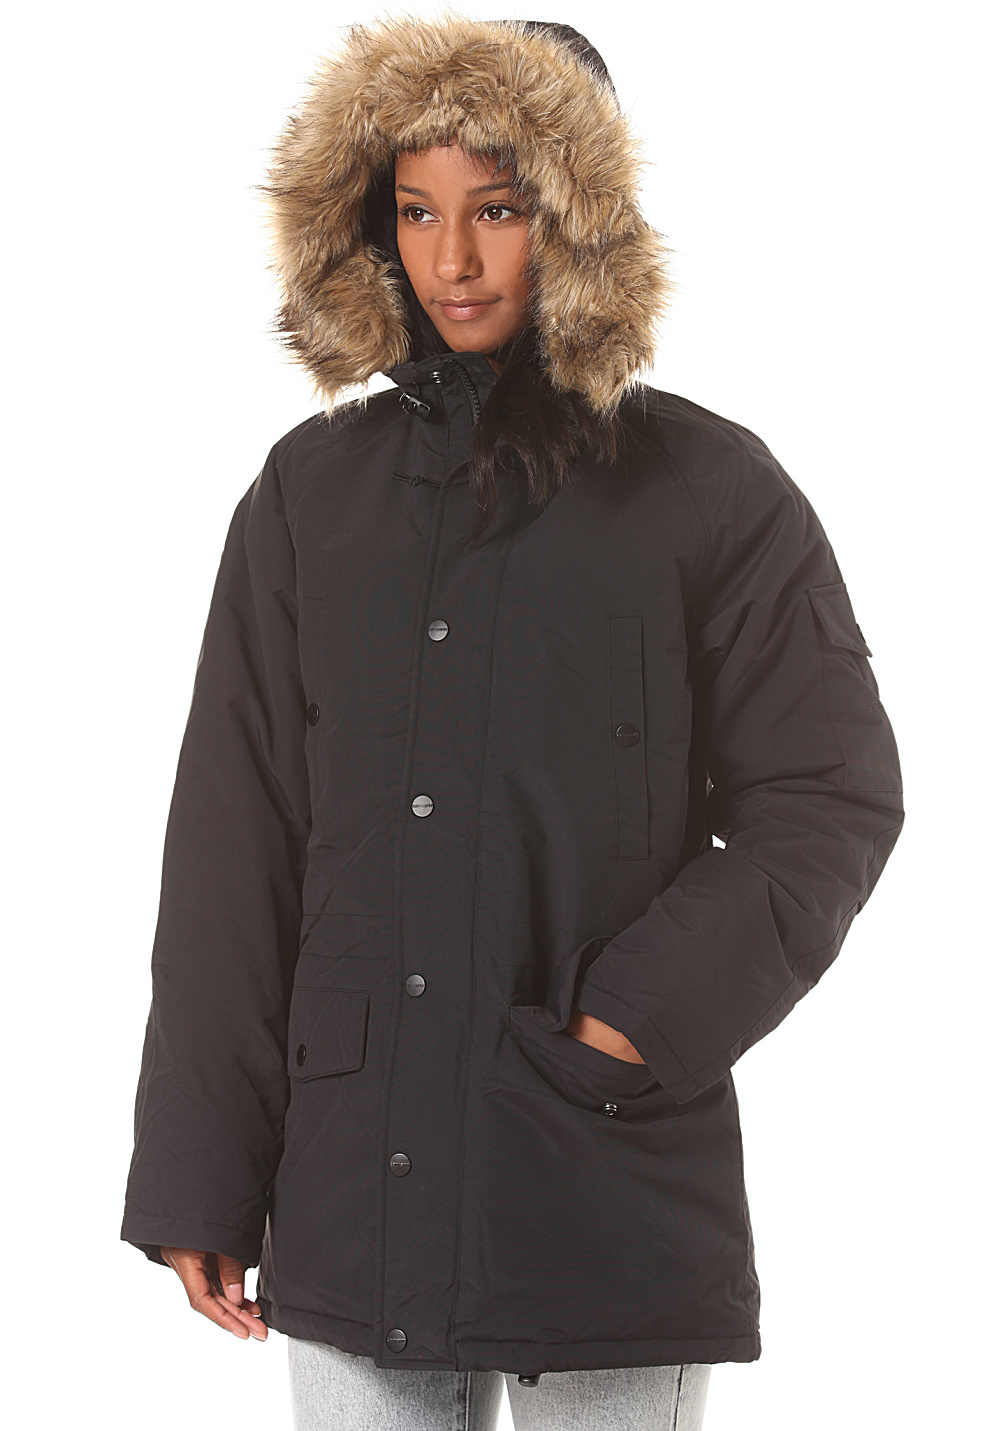 eaba9d62b982 Next. This product is currently out of stock. carhartt WIP. Anchorage - Coat  for Women. €199.95